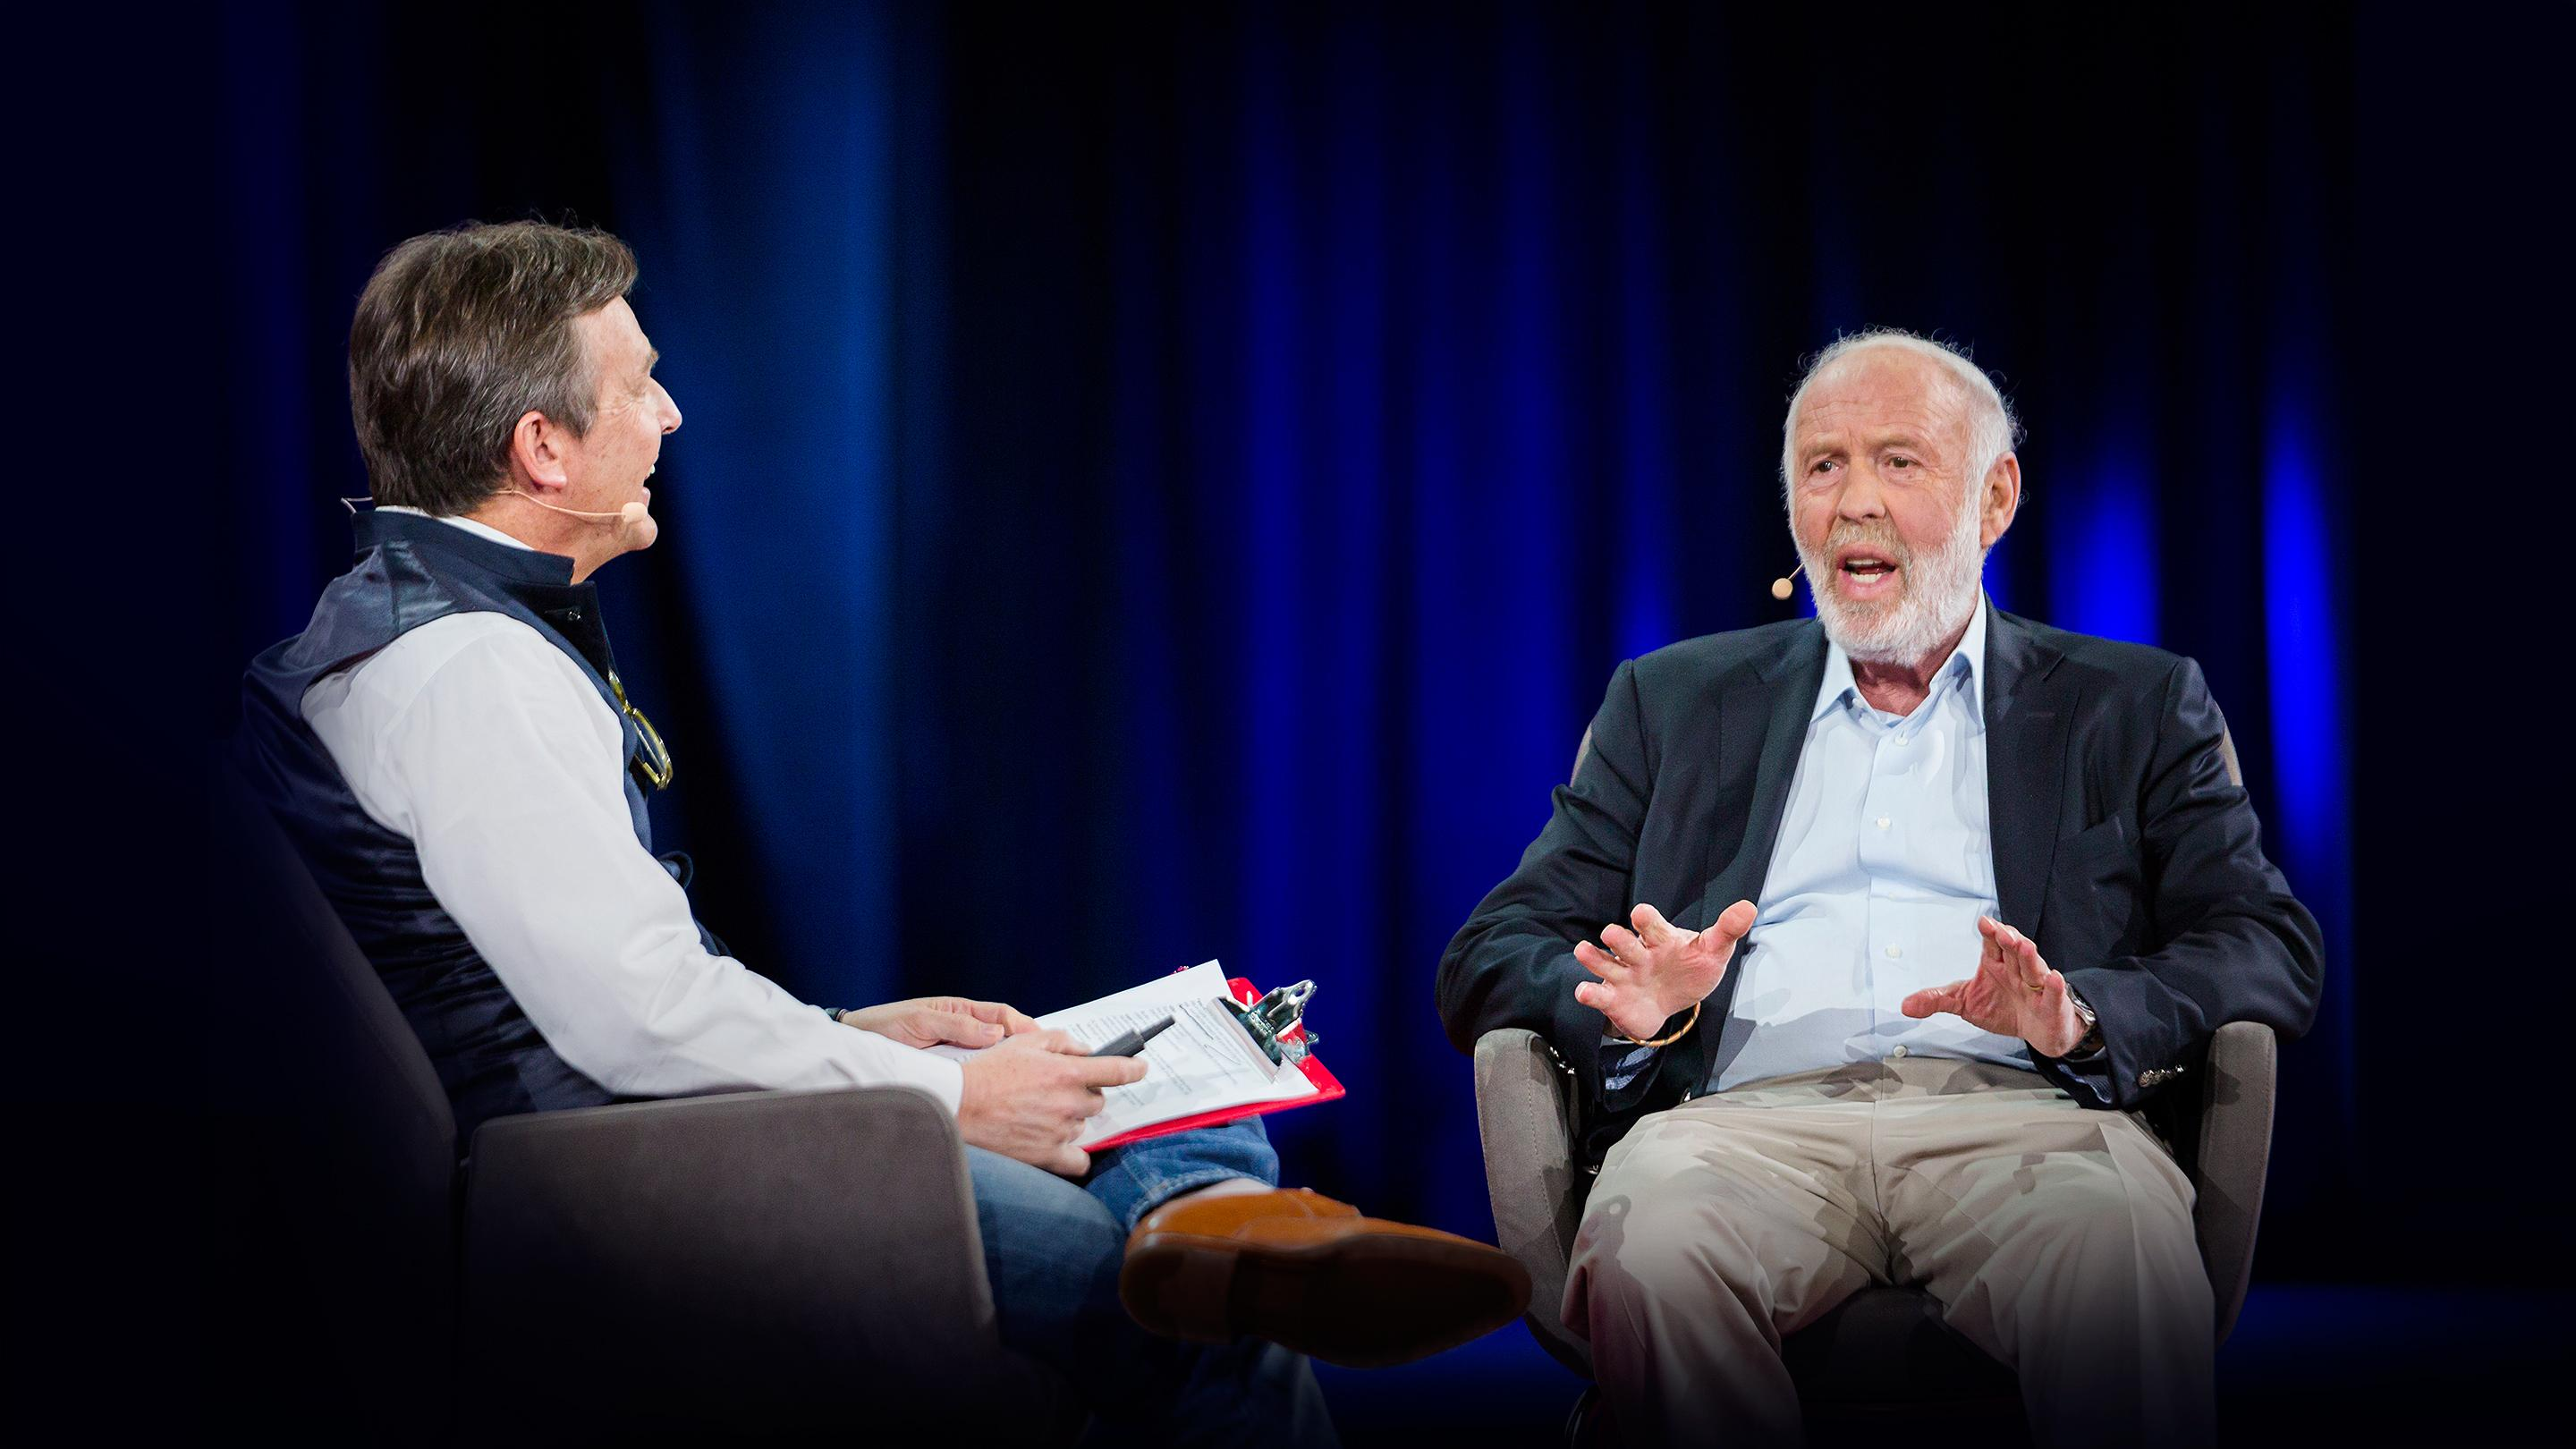 jim simons the mathematician who cracked wall street talk jim simons